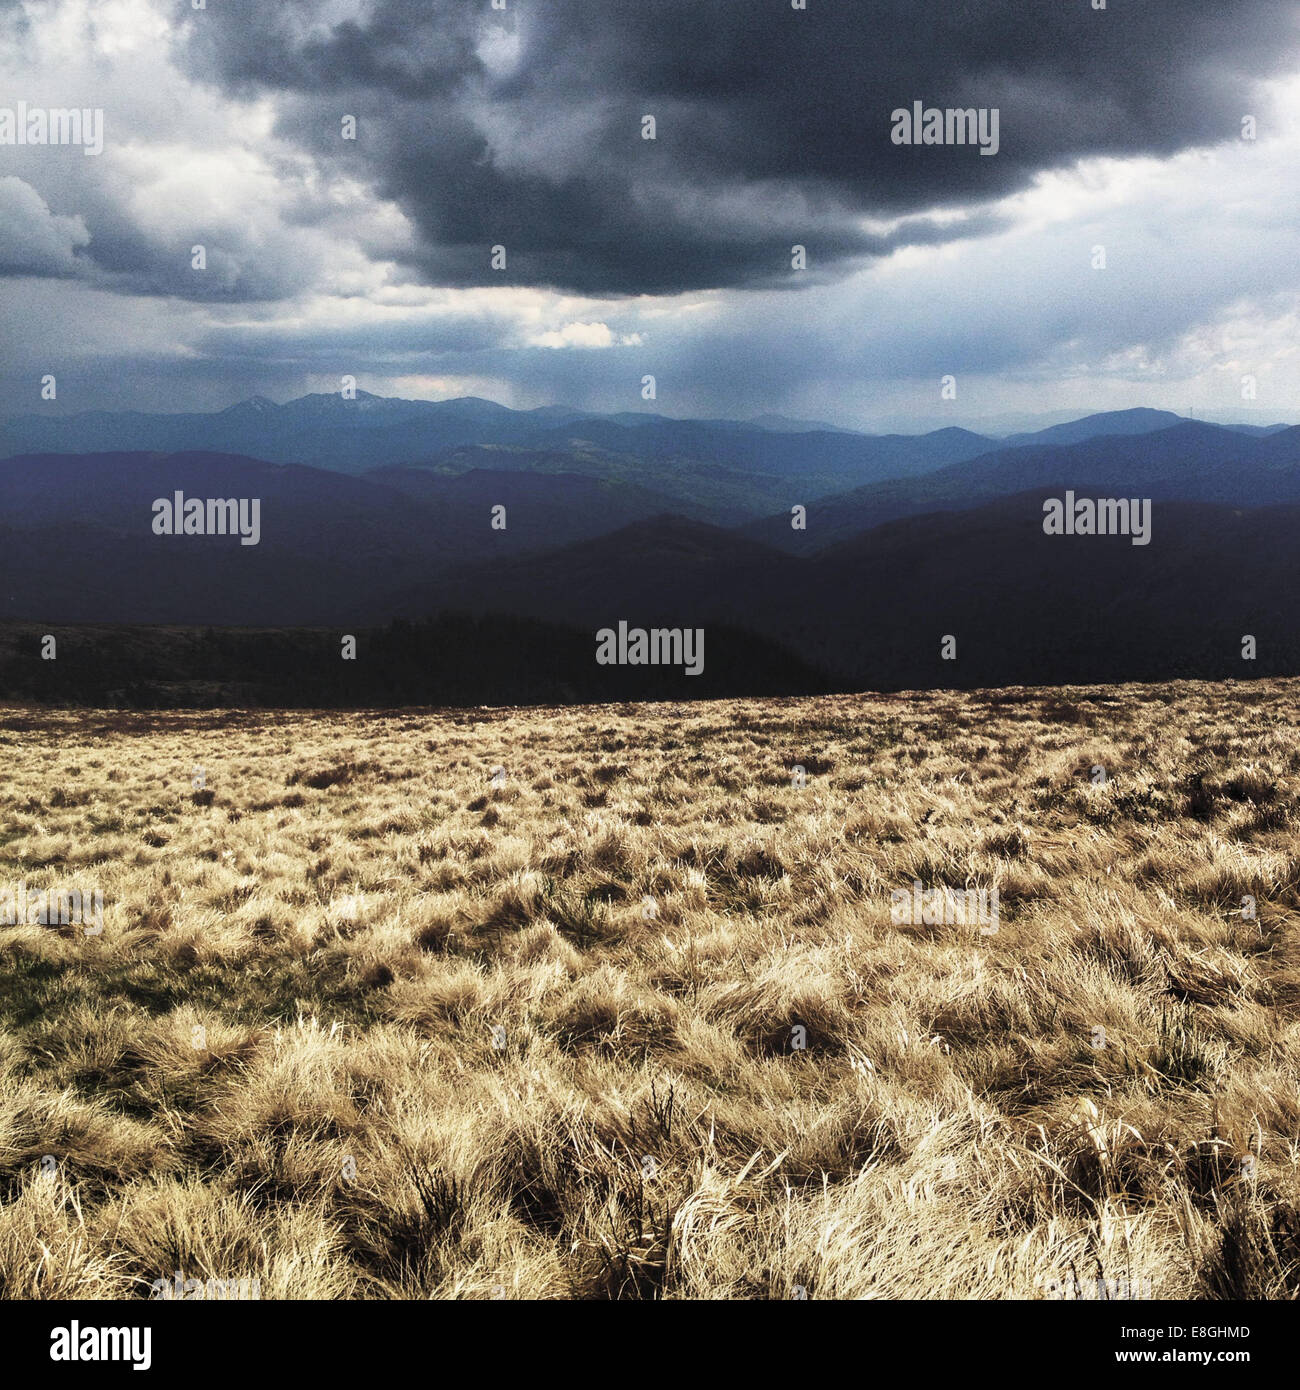 Heavy cloud over field and mountains - Stock Image